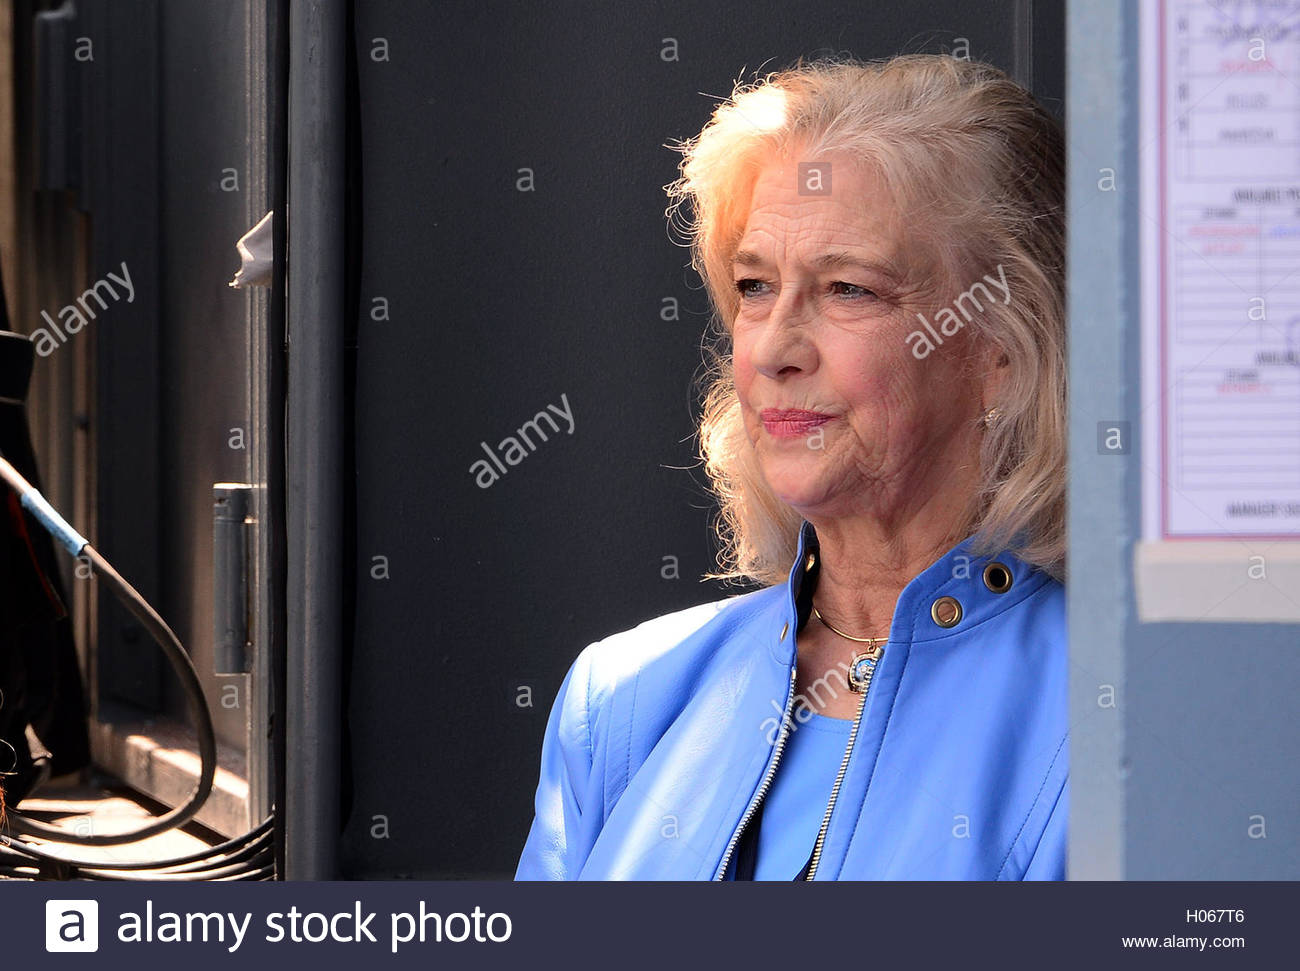 Los Angeles, California, USA. 12th Apr, 2016. Sandra Scully looks on with teary eyes as Hall of Fame Dodgers announcer - Stock Image